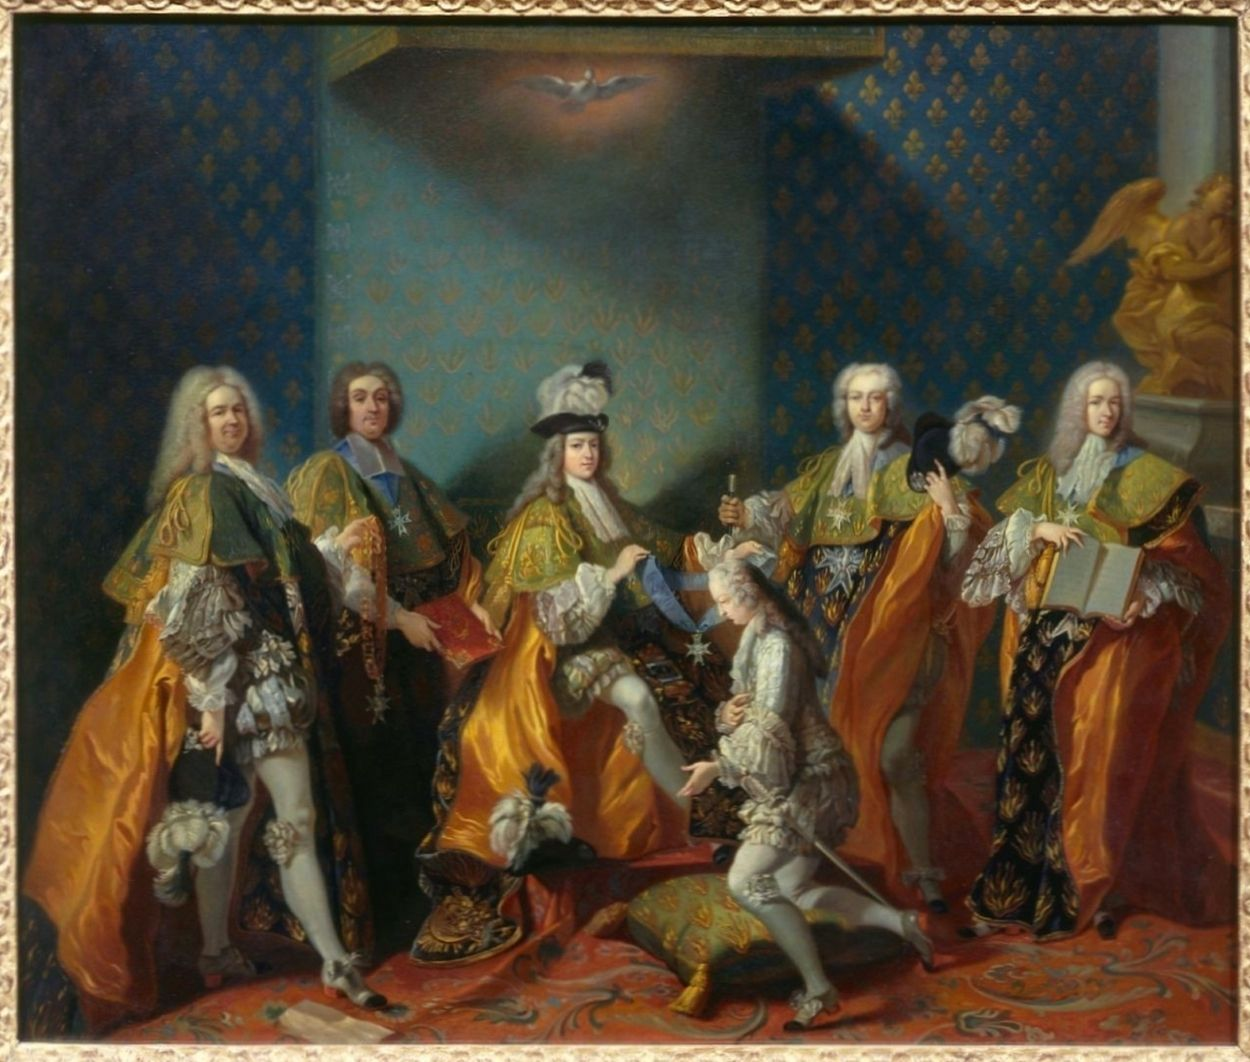 Louis XV, King of France, aged 14, receiving the Order of the Holy Spirit his cousin Louis de Bourbon-Condé, Count of Clermont, June 7, 1724, by Jean-Baptiste Van Loo